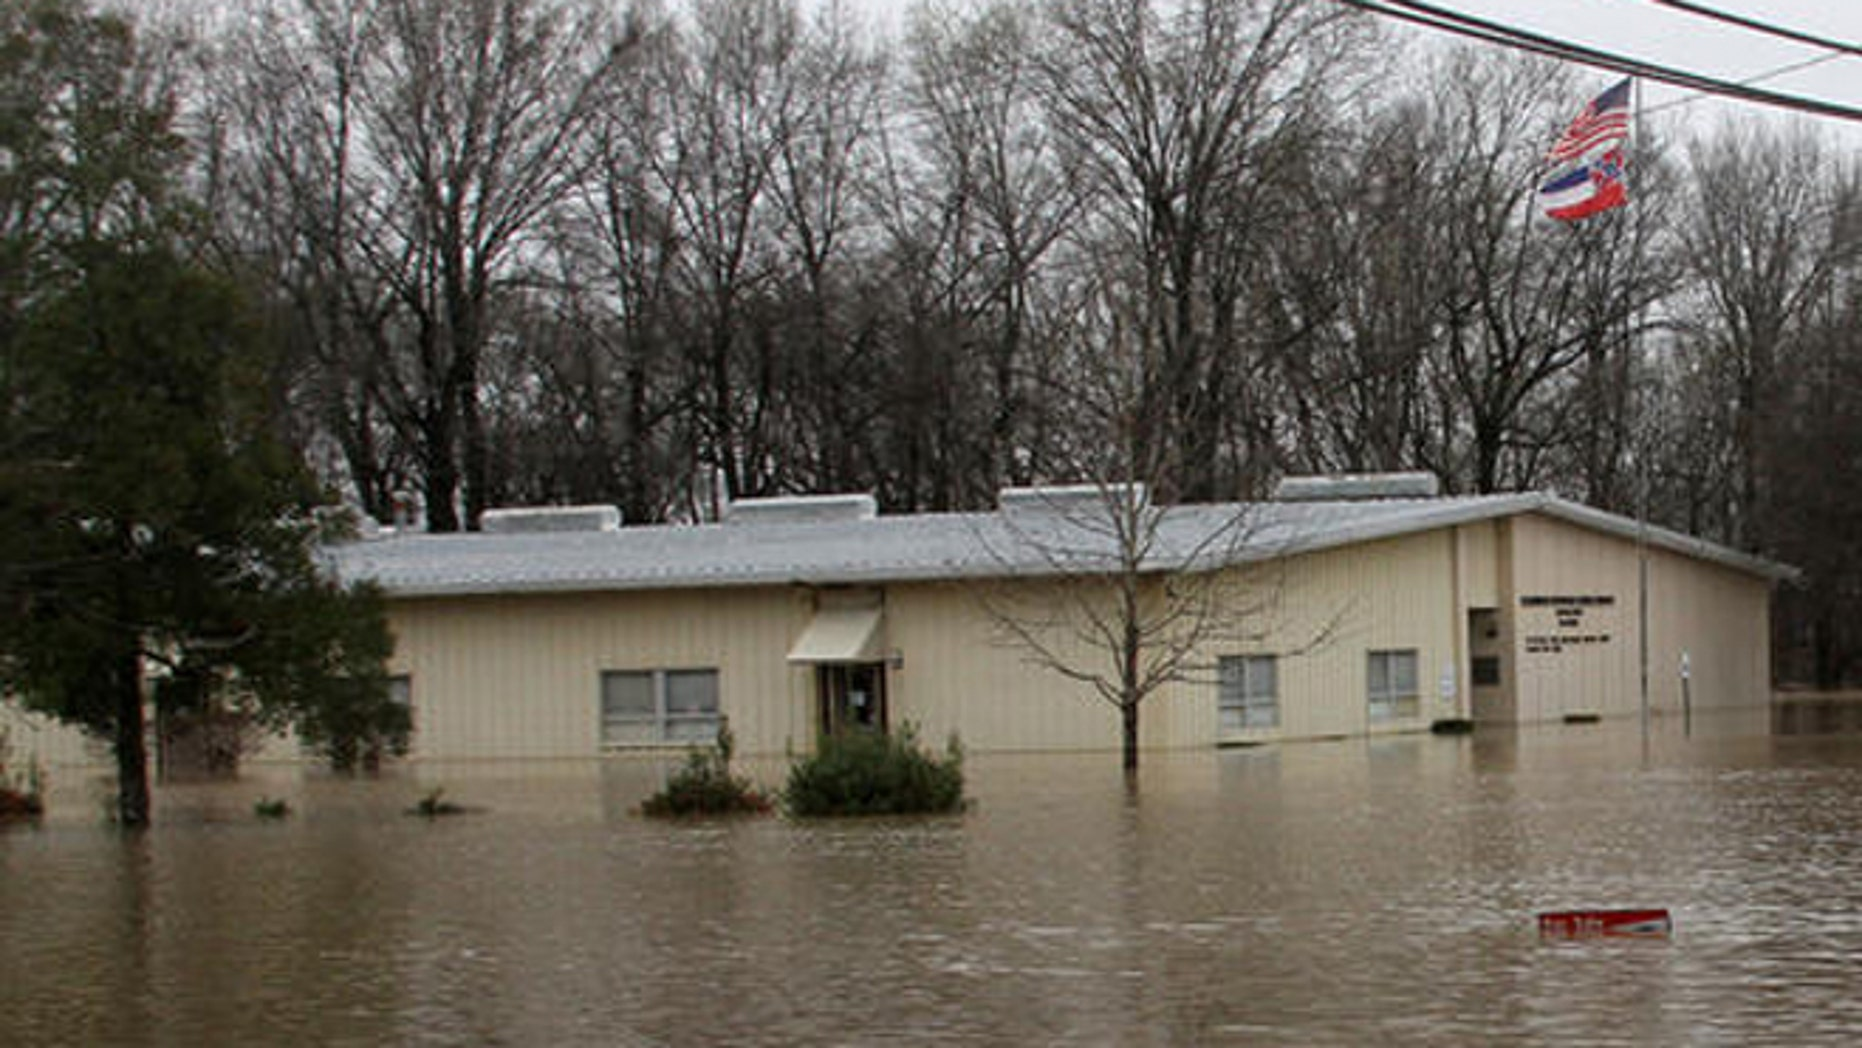 The Clarksdale Municipal School District office is surrounded by several feet of floodwater, Friday, March 11, 2016, in Clarksdale, Mississippi. (Troy Catchings/The Clarksdale Press Register, via AP) MANDATORY CREDIT